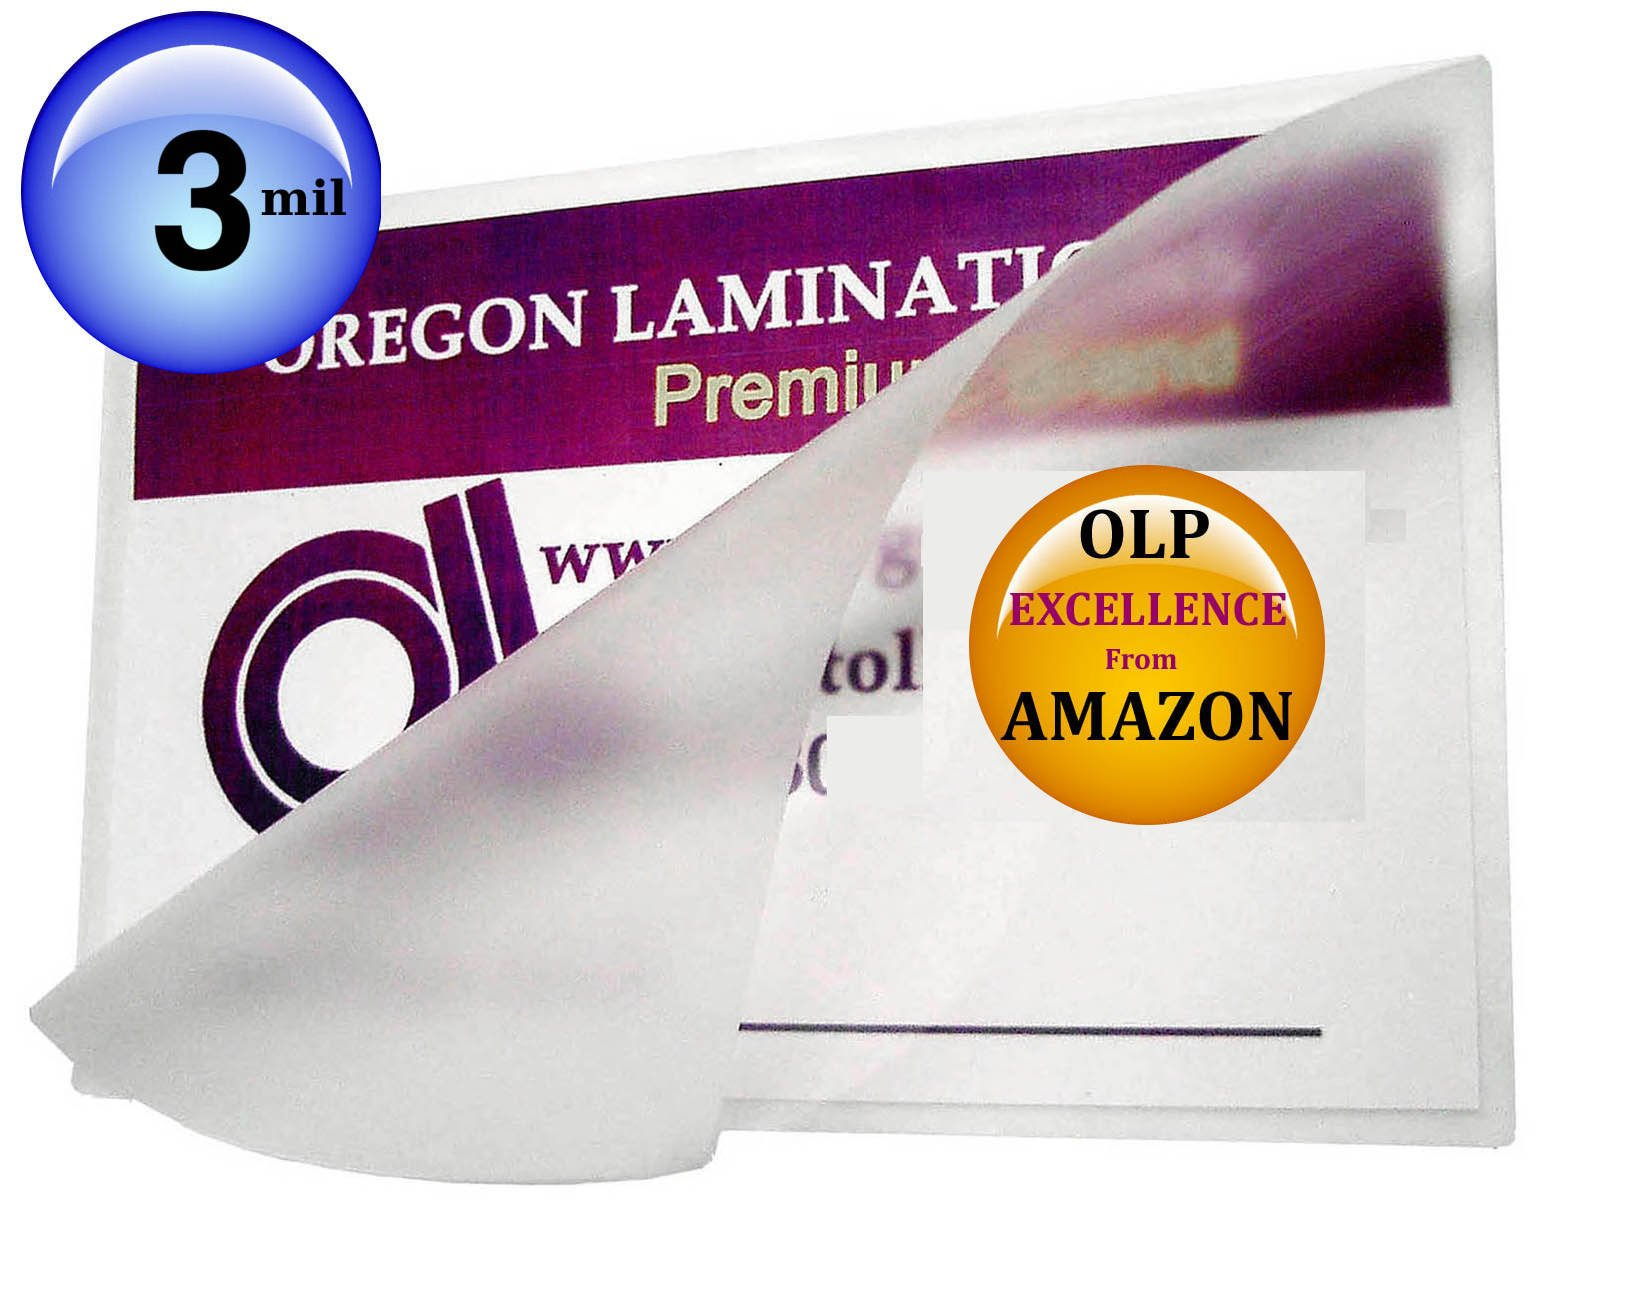 Qty 500 Double Letter Laminating Pouches 3 Mil 11-1/2 x 17-1/2 Hot Laminator Sleeves